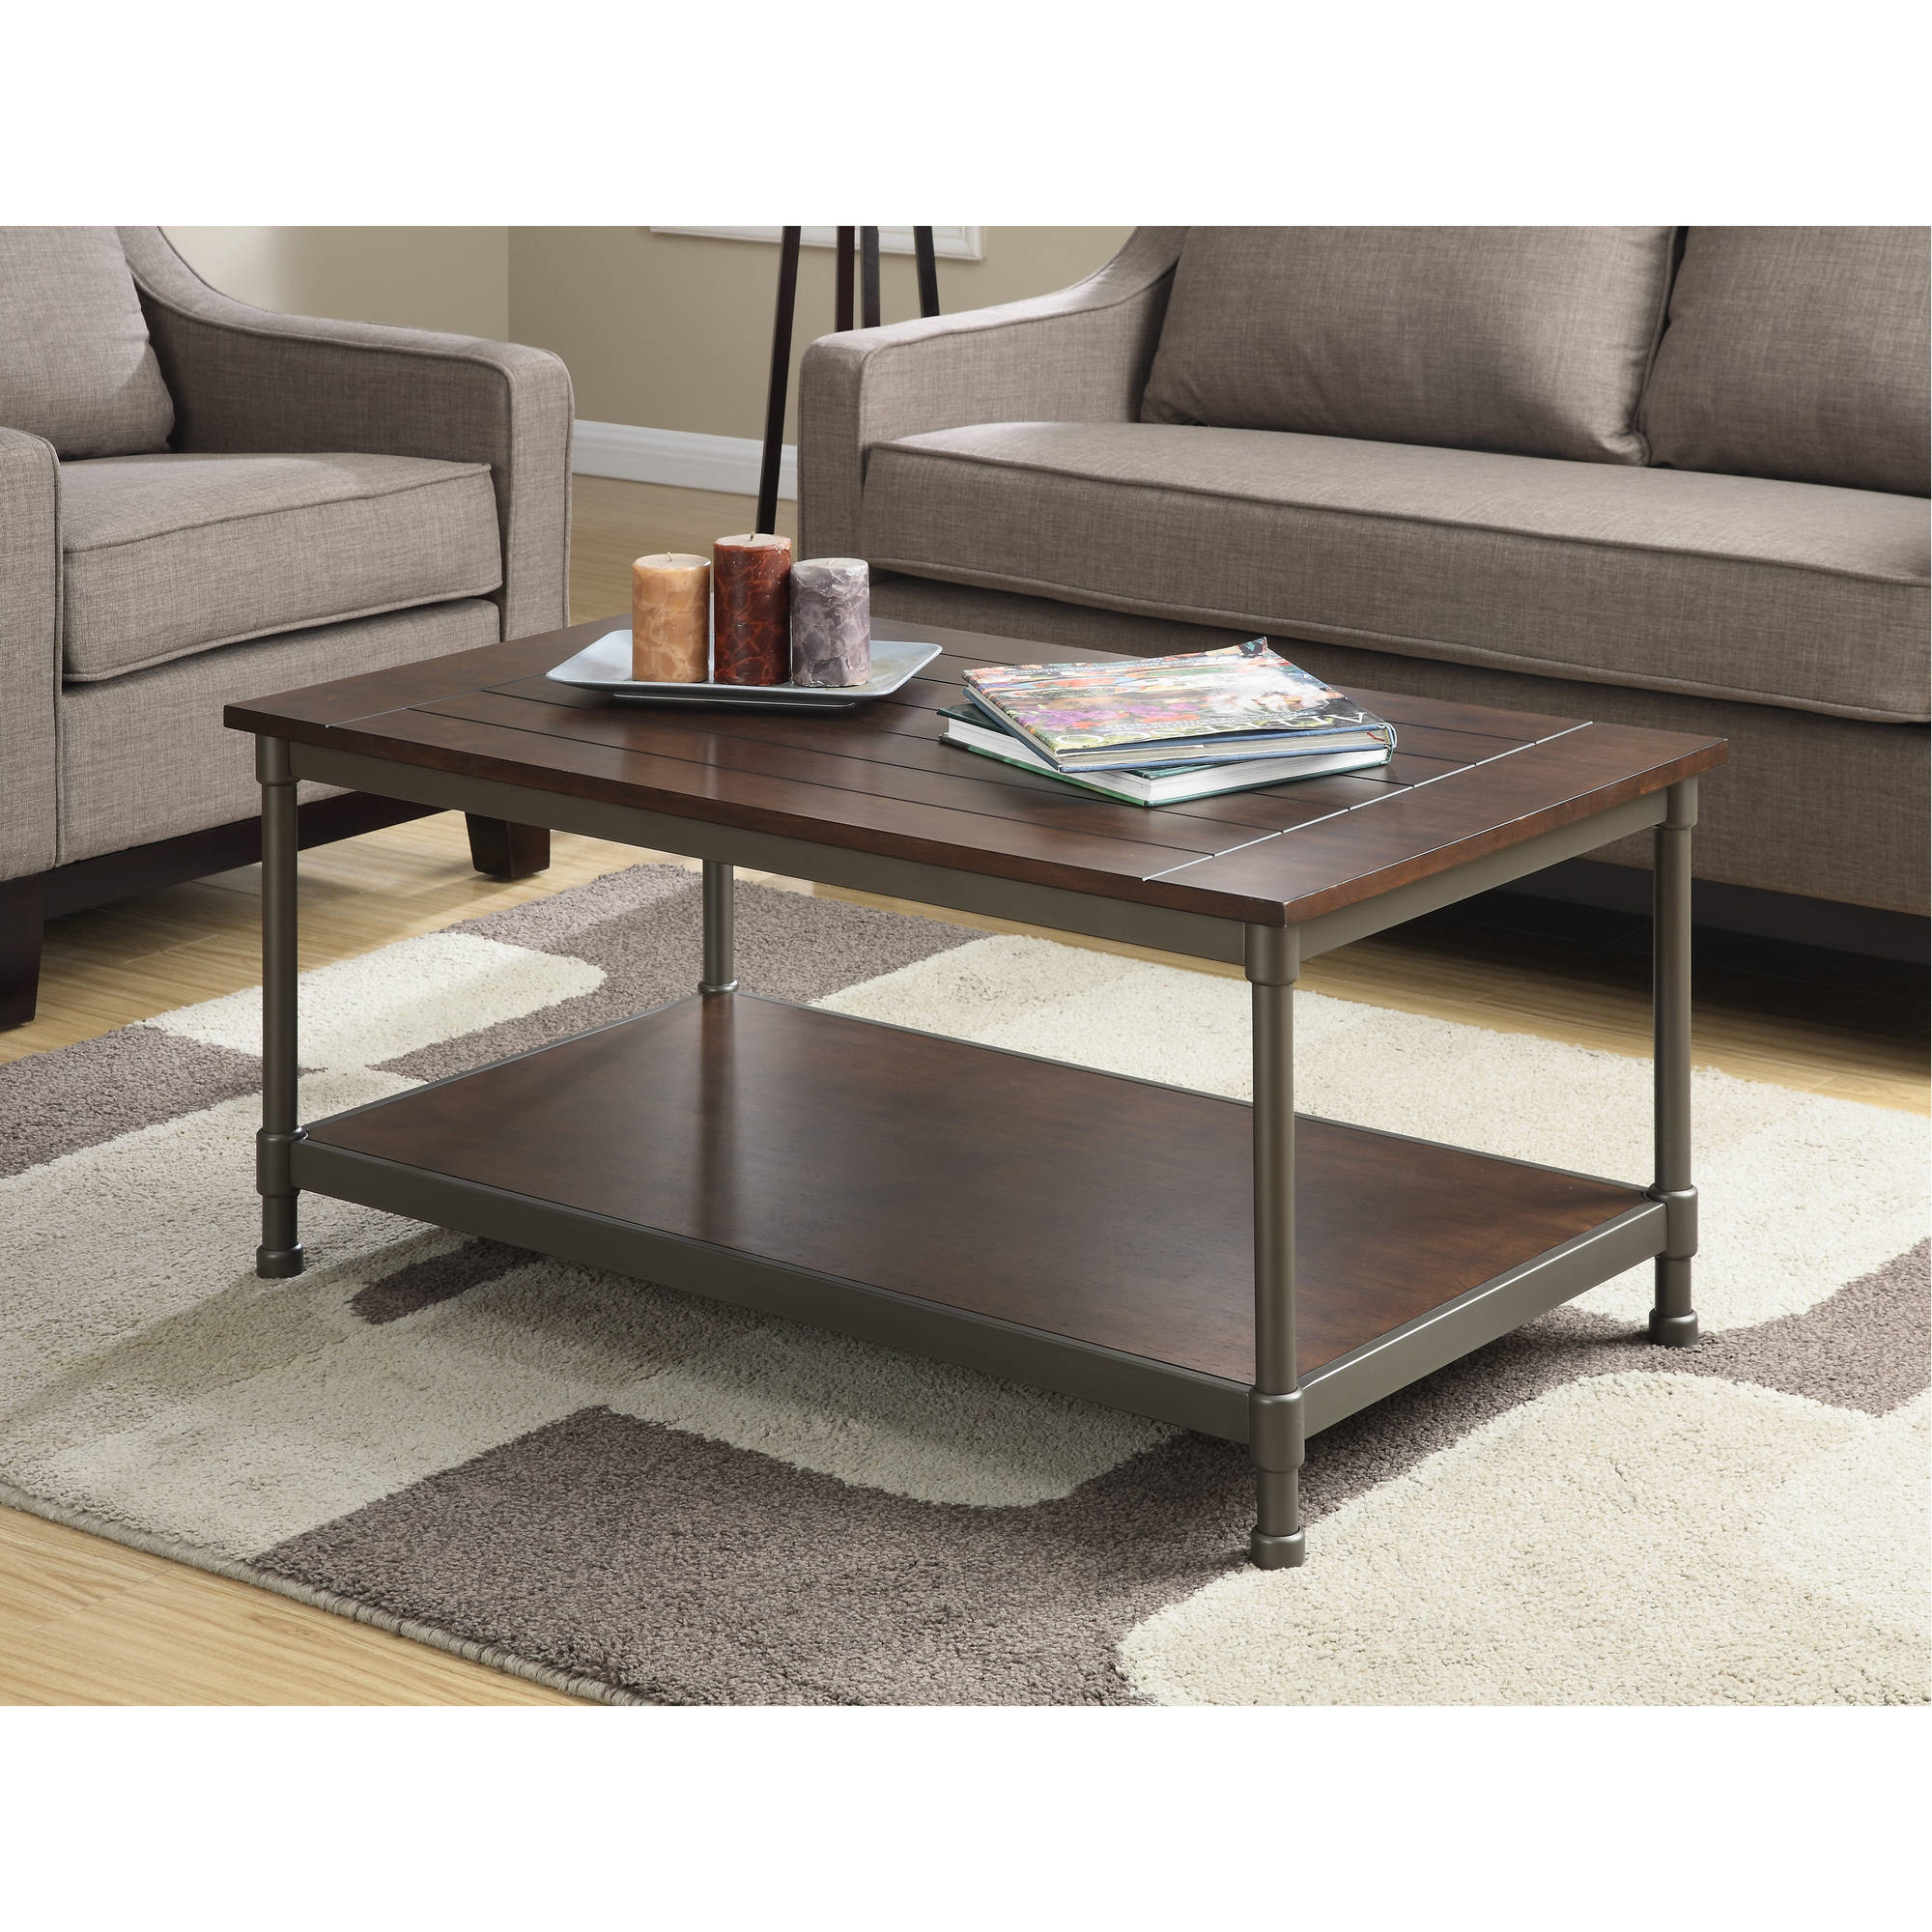 Sullivan Coffee Table, Pewter/Walnut Finish